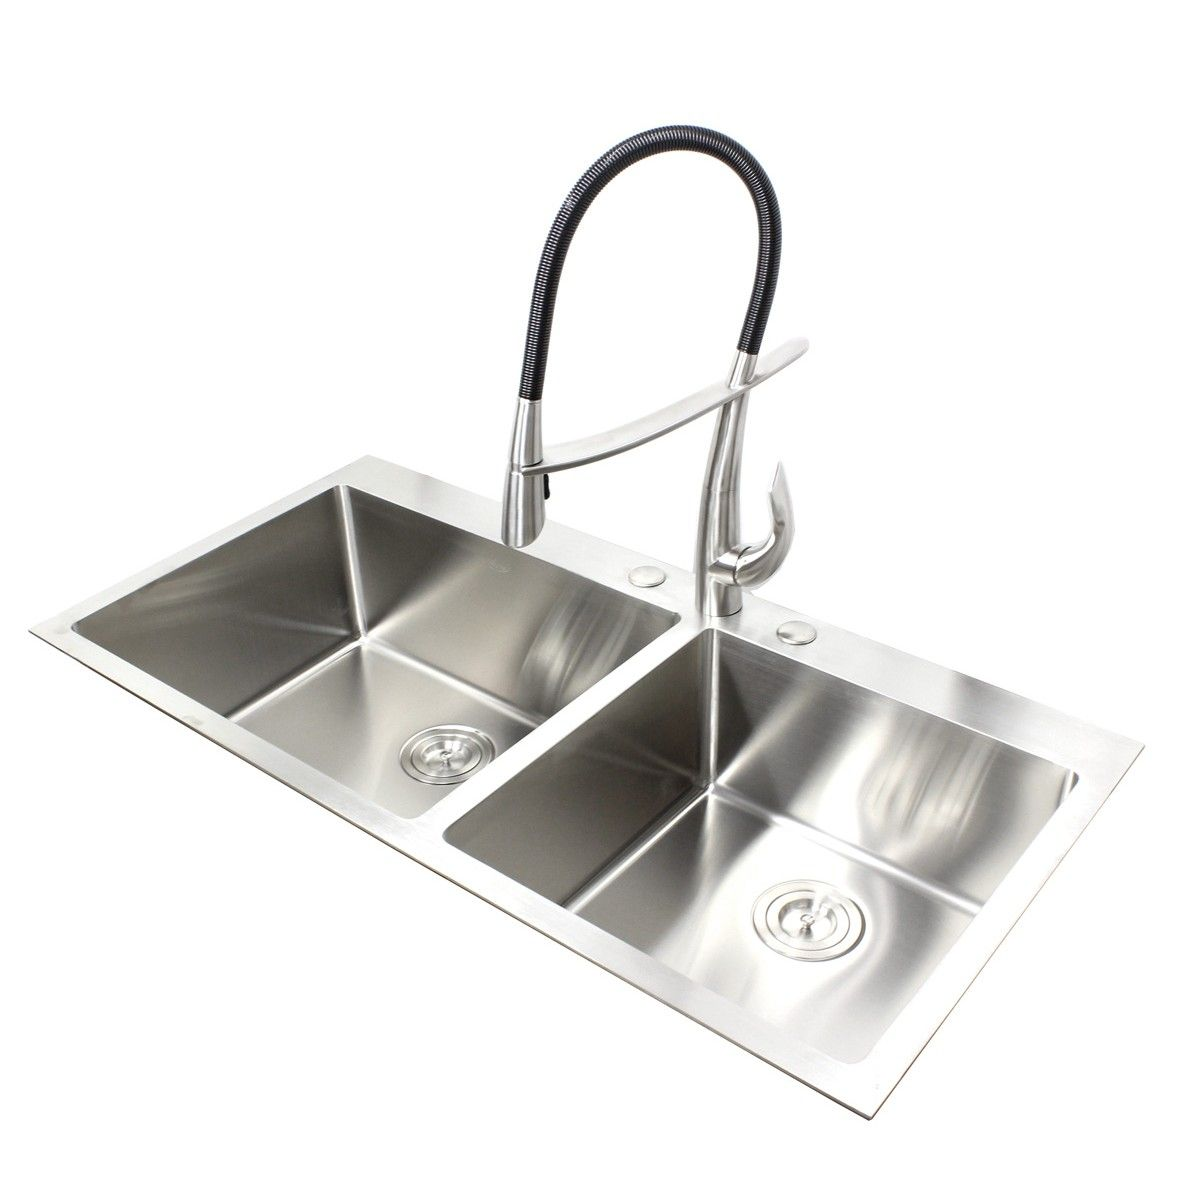 Medium image of 43 inch topmount   drop in stainless steel double bowl kitchen sink 15mm radius design